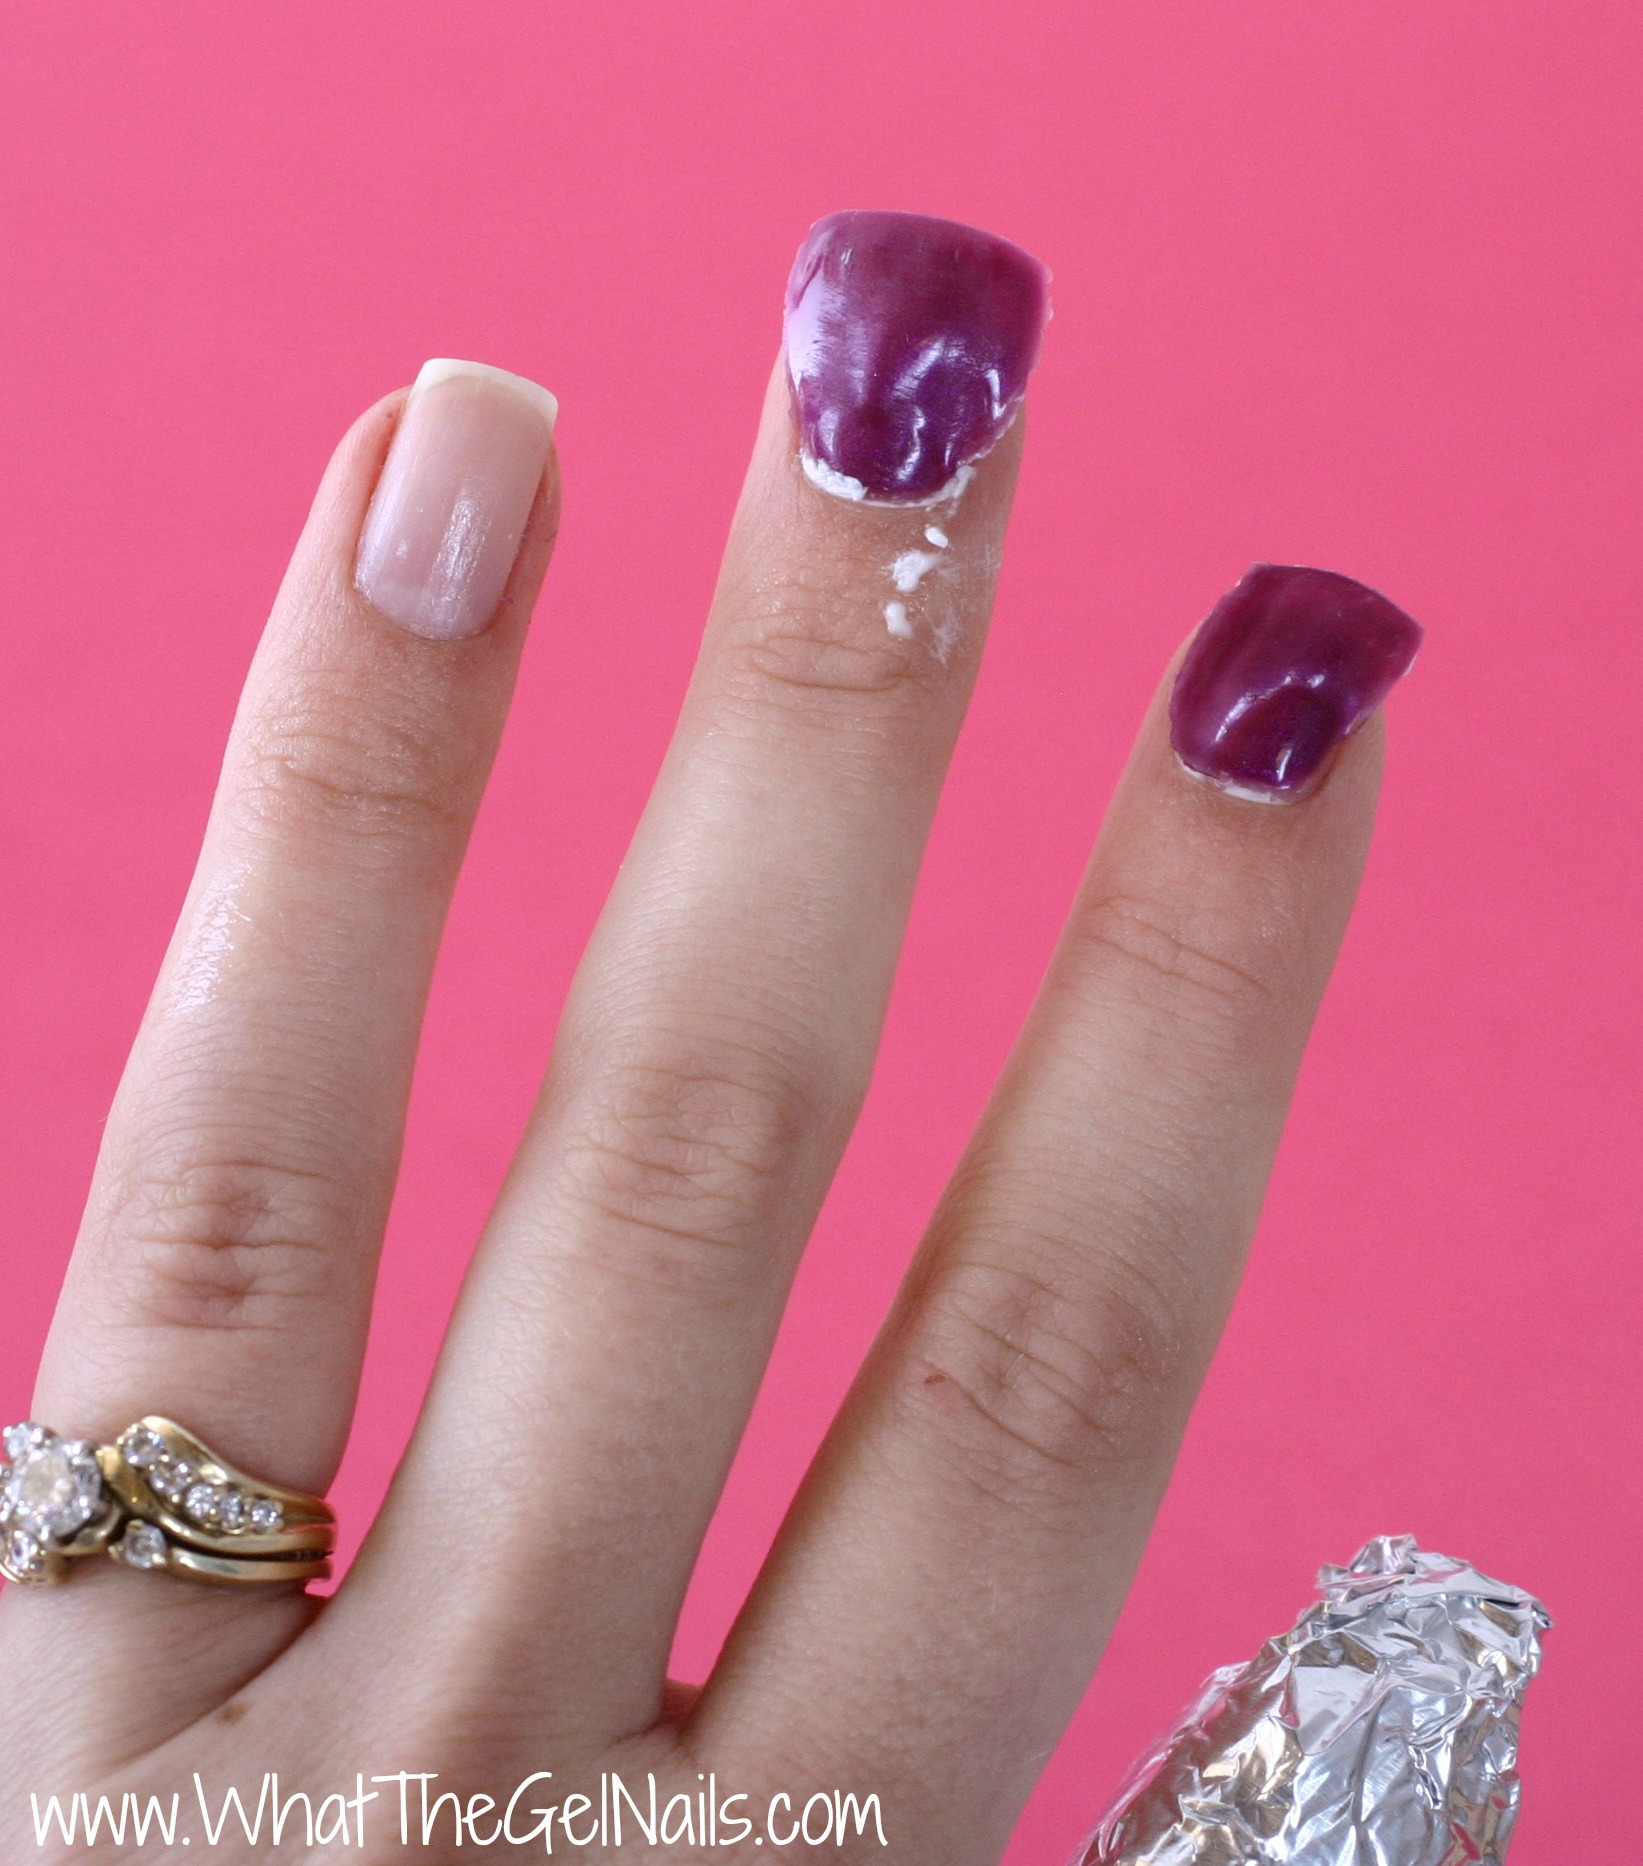 what to use at home to take off gel nails photo - 1